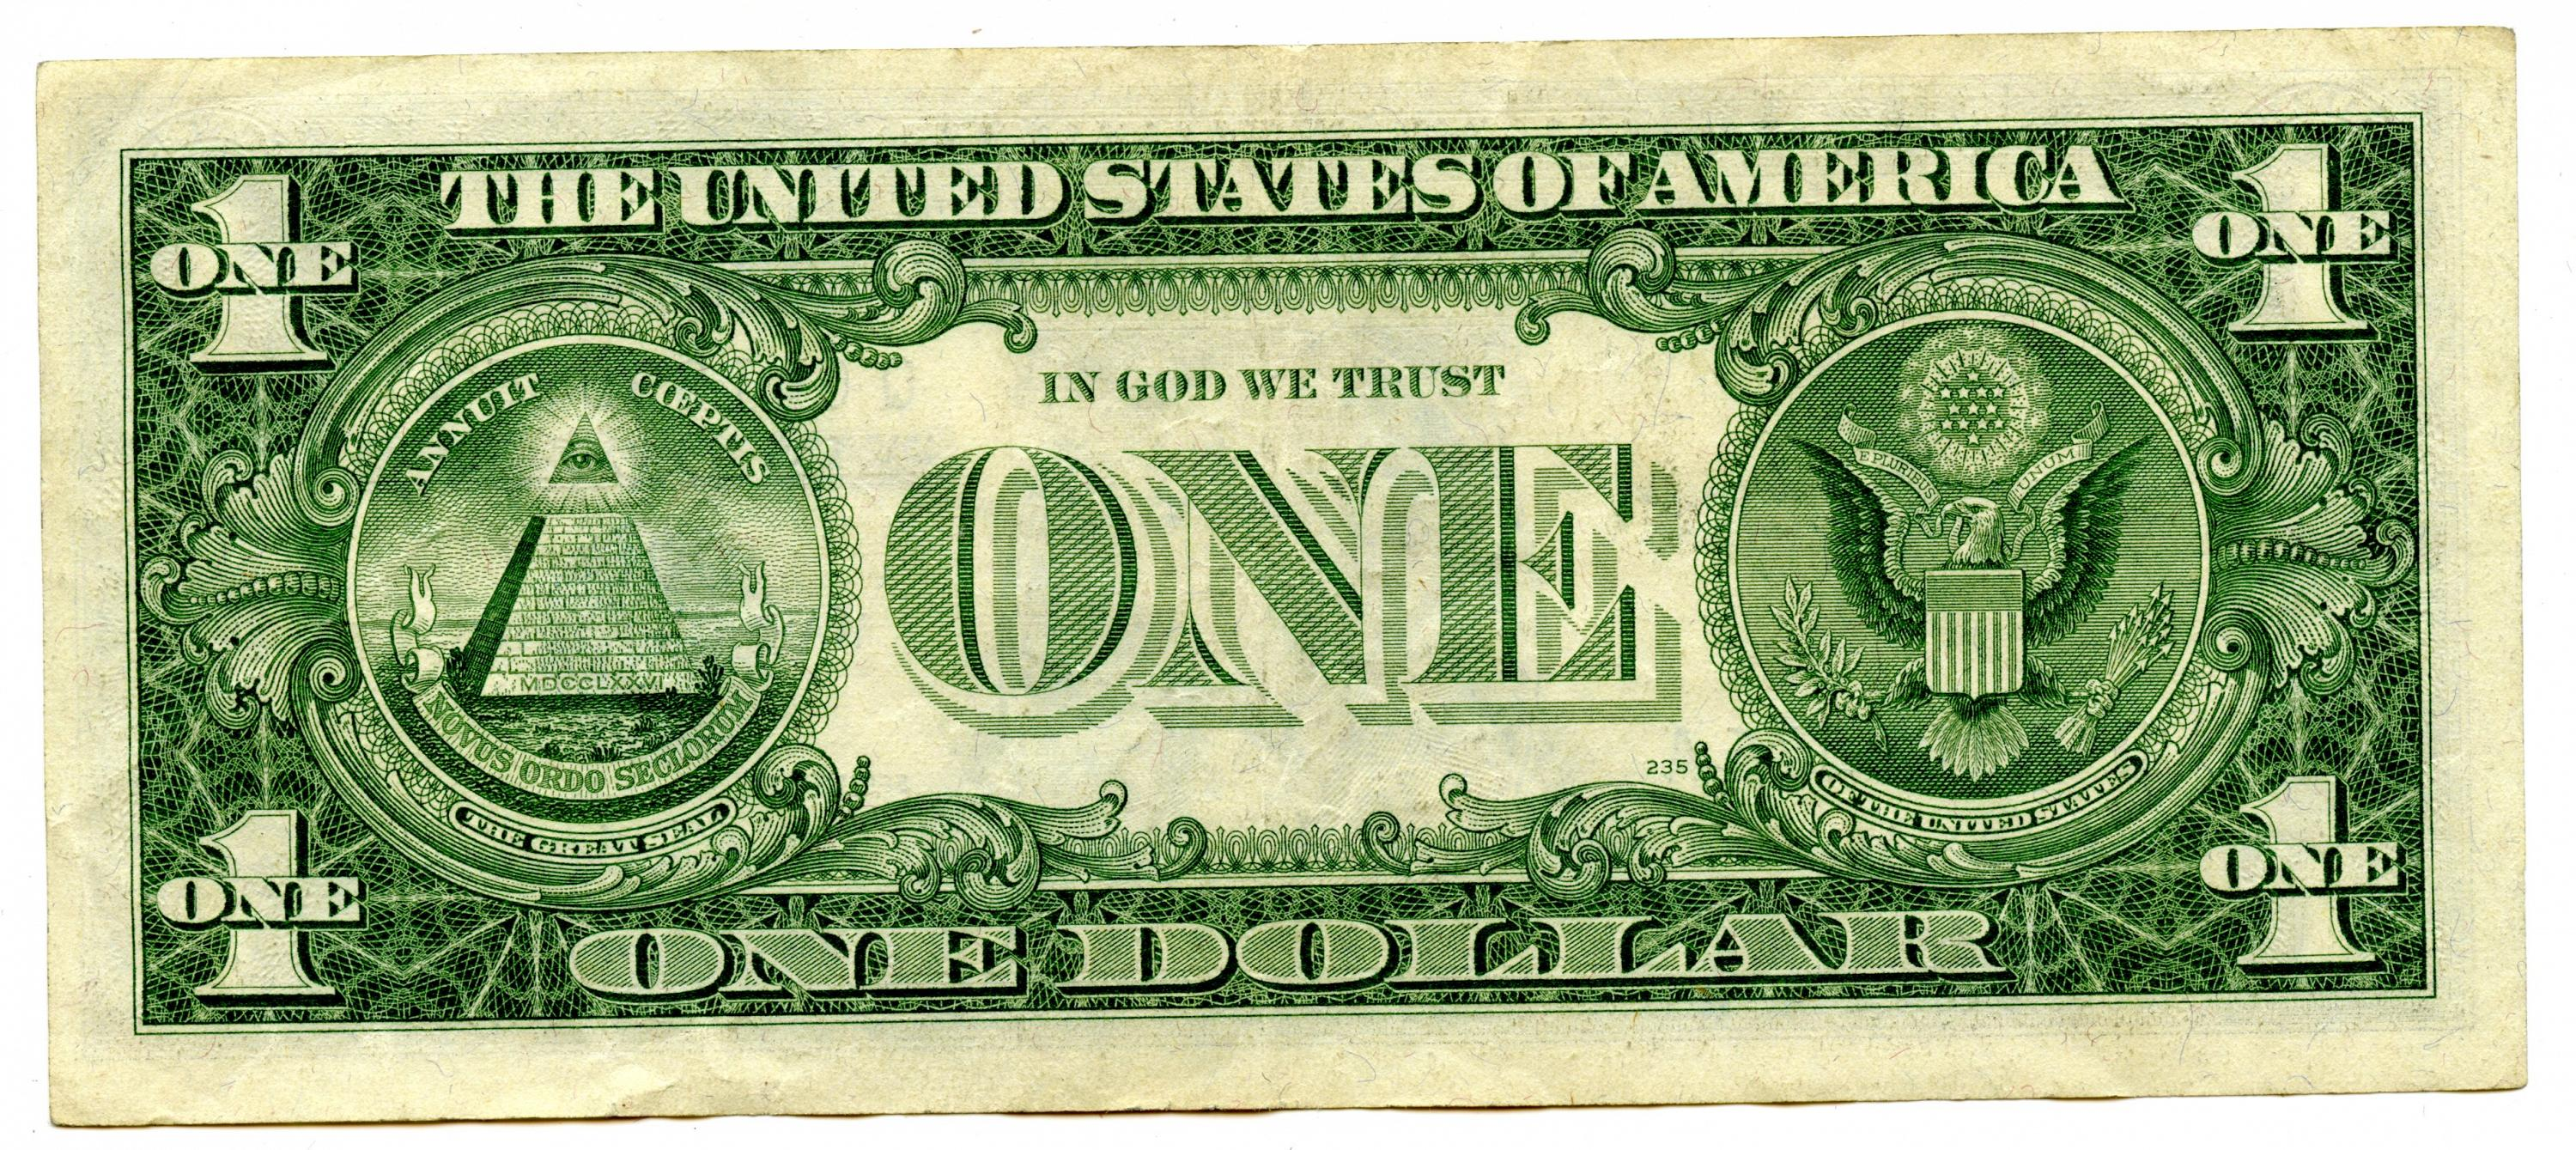 One Dollar Silver Certificate Series 1957 For Sale Buy Now Online